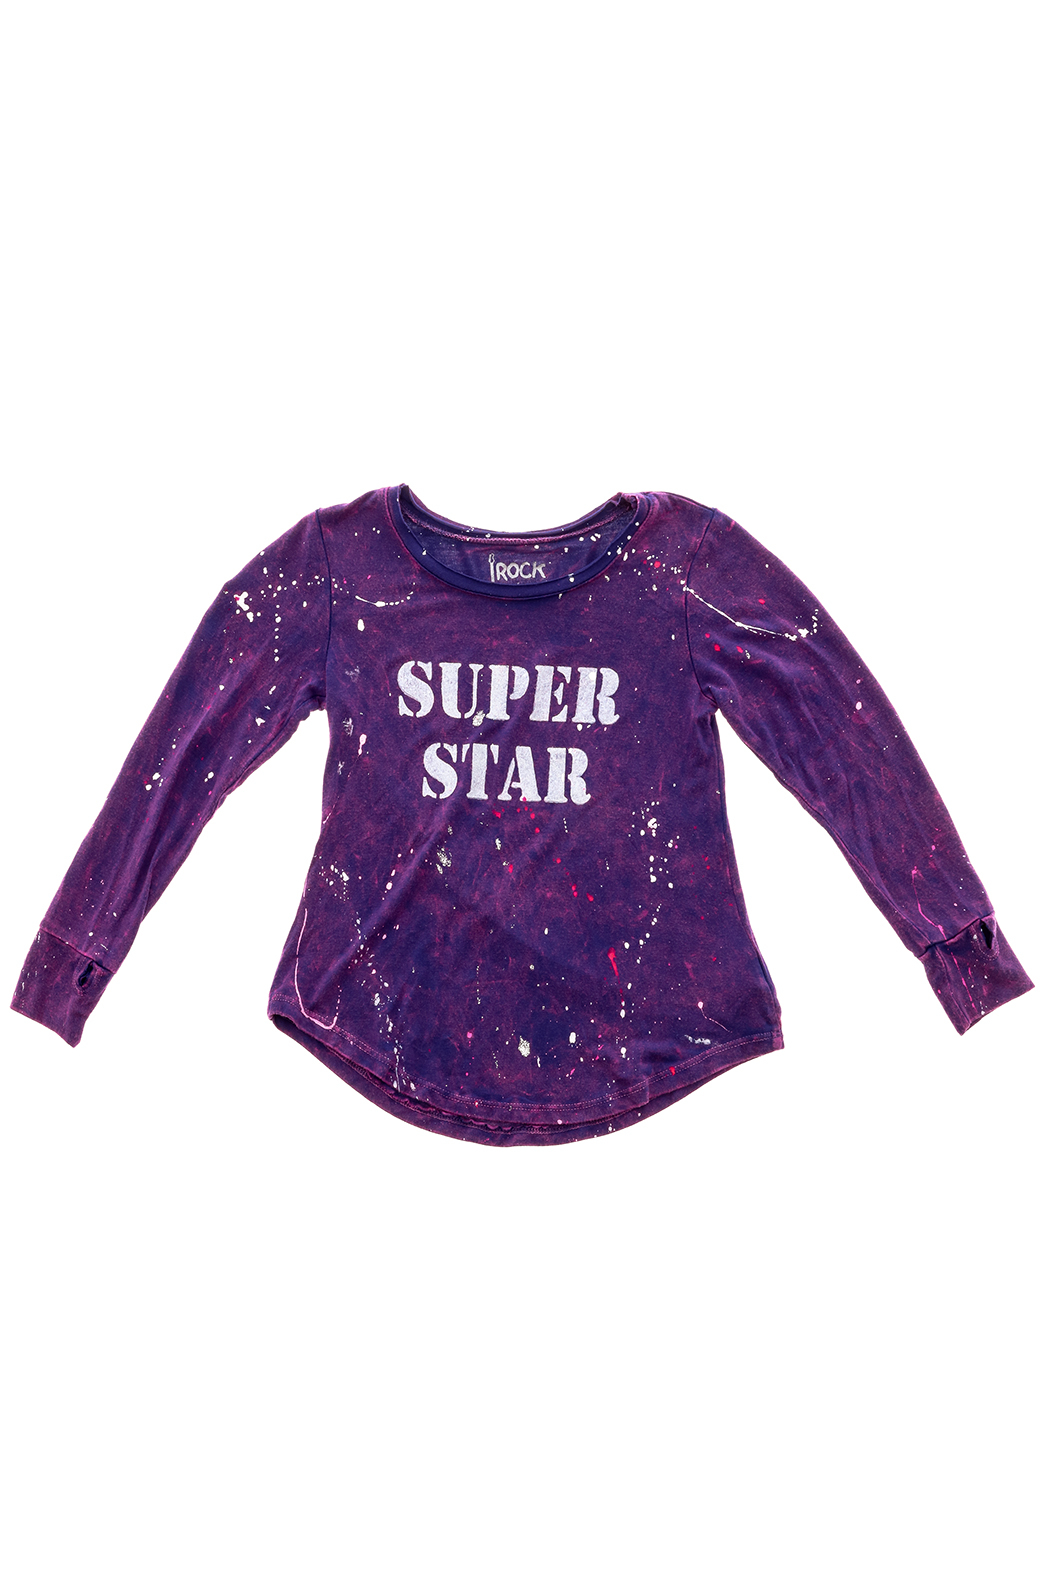 Rock Candy Super Star Shirt - Main Image